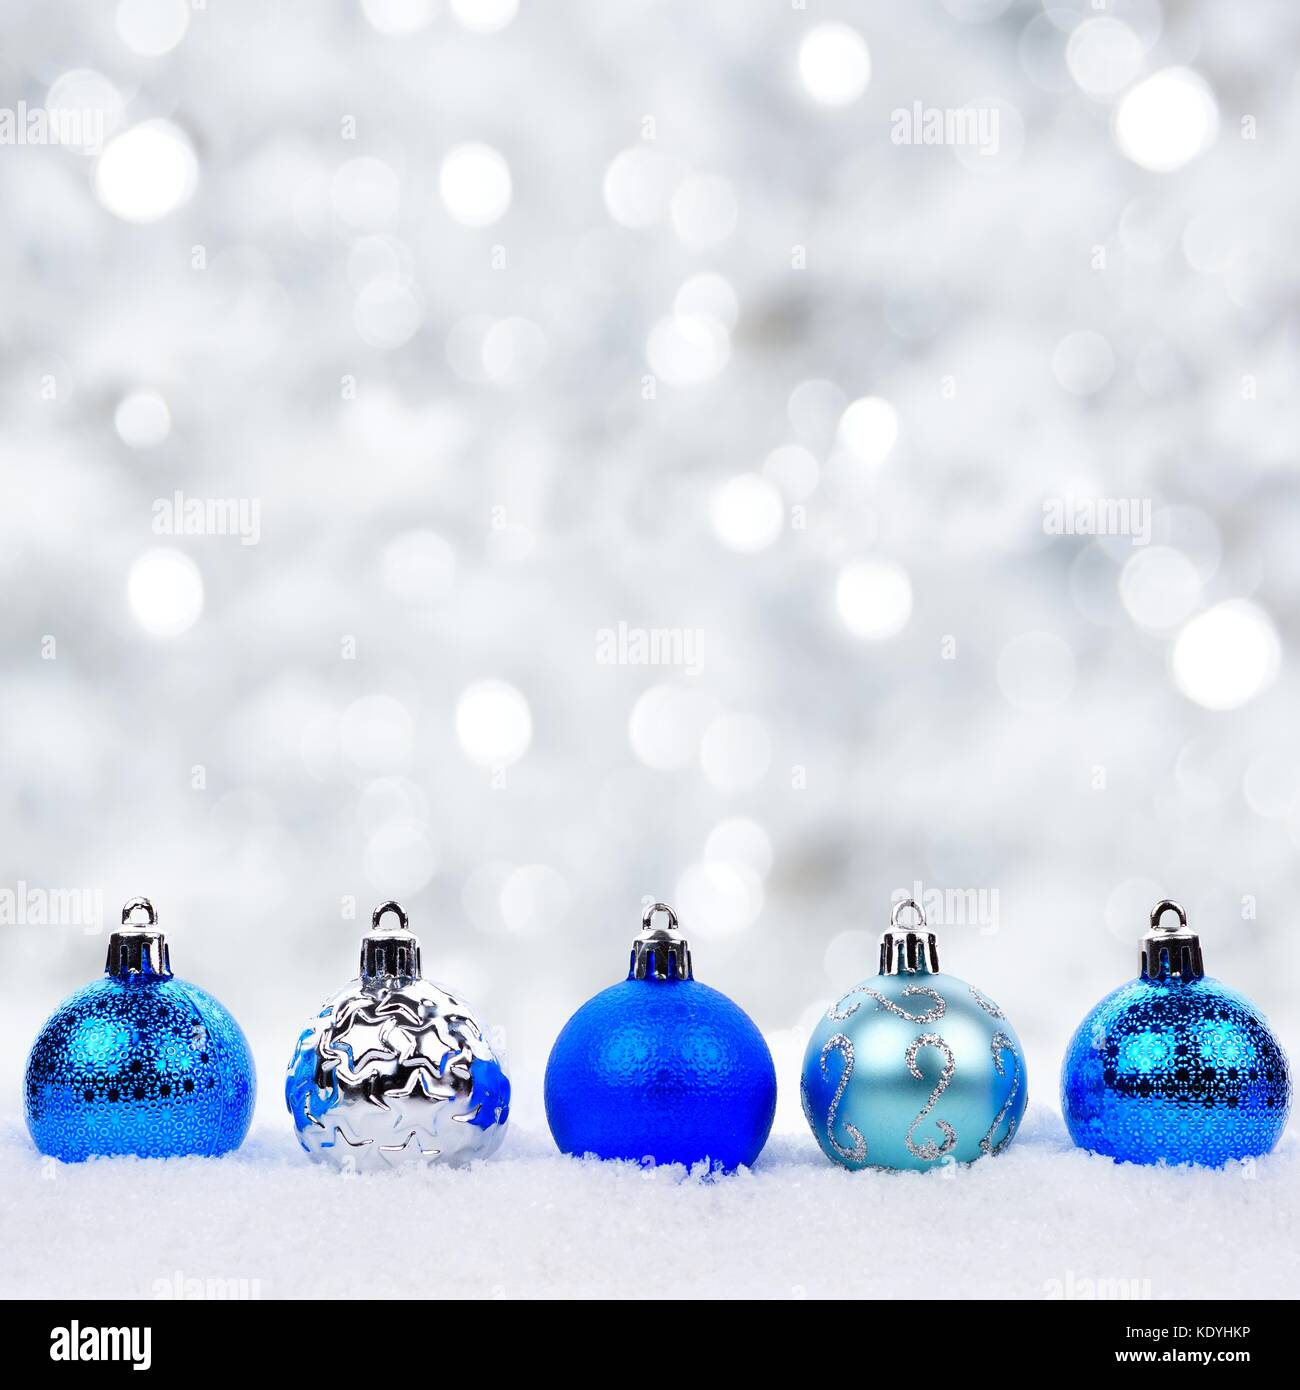 Silver And Blue Christmas Bauble Stock Photos Amp Silver And